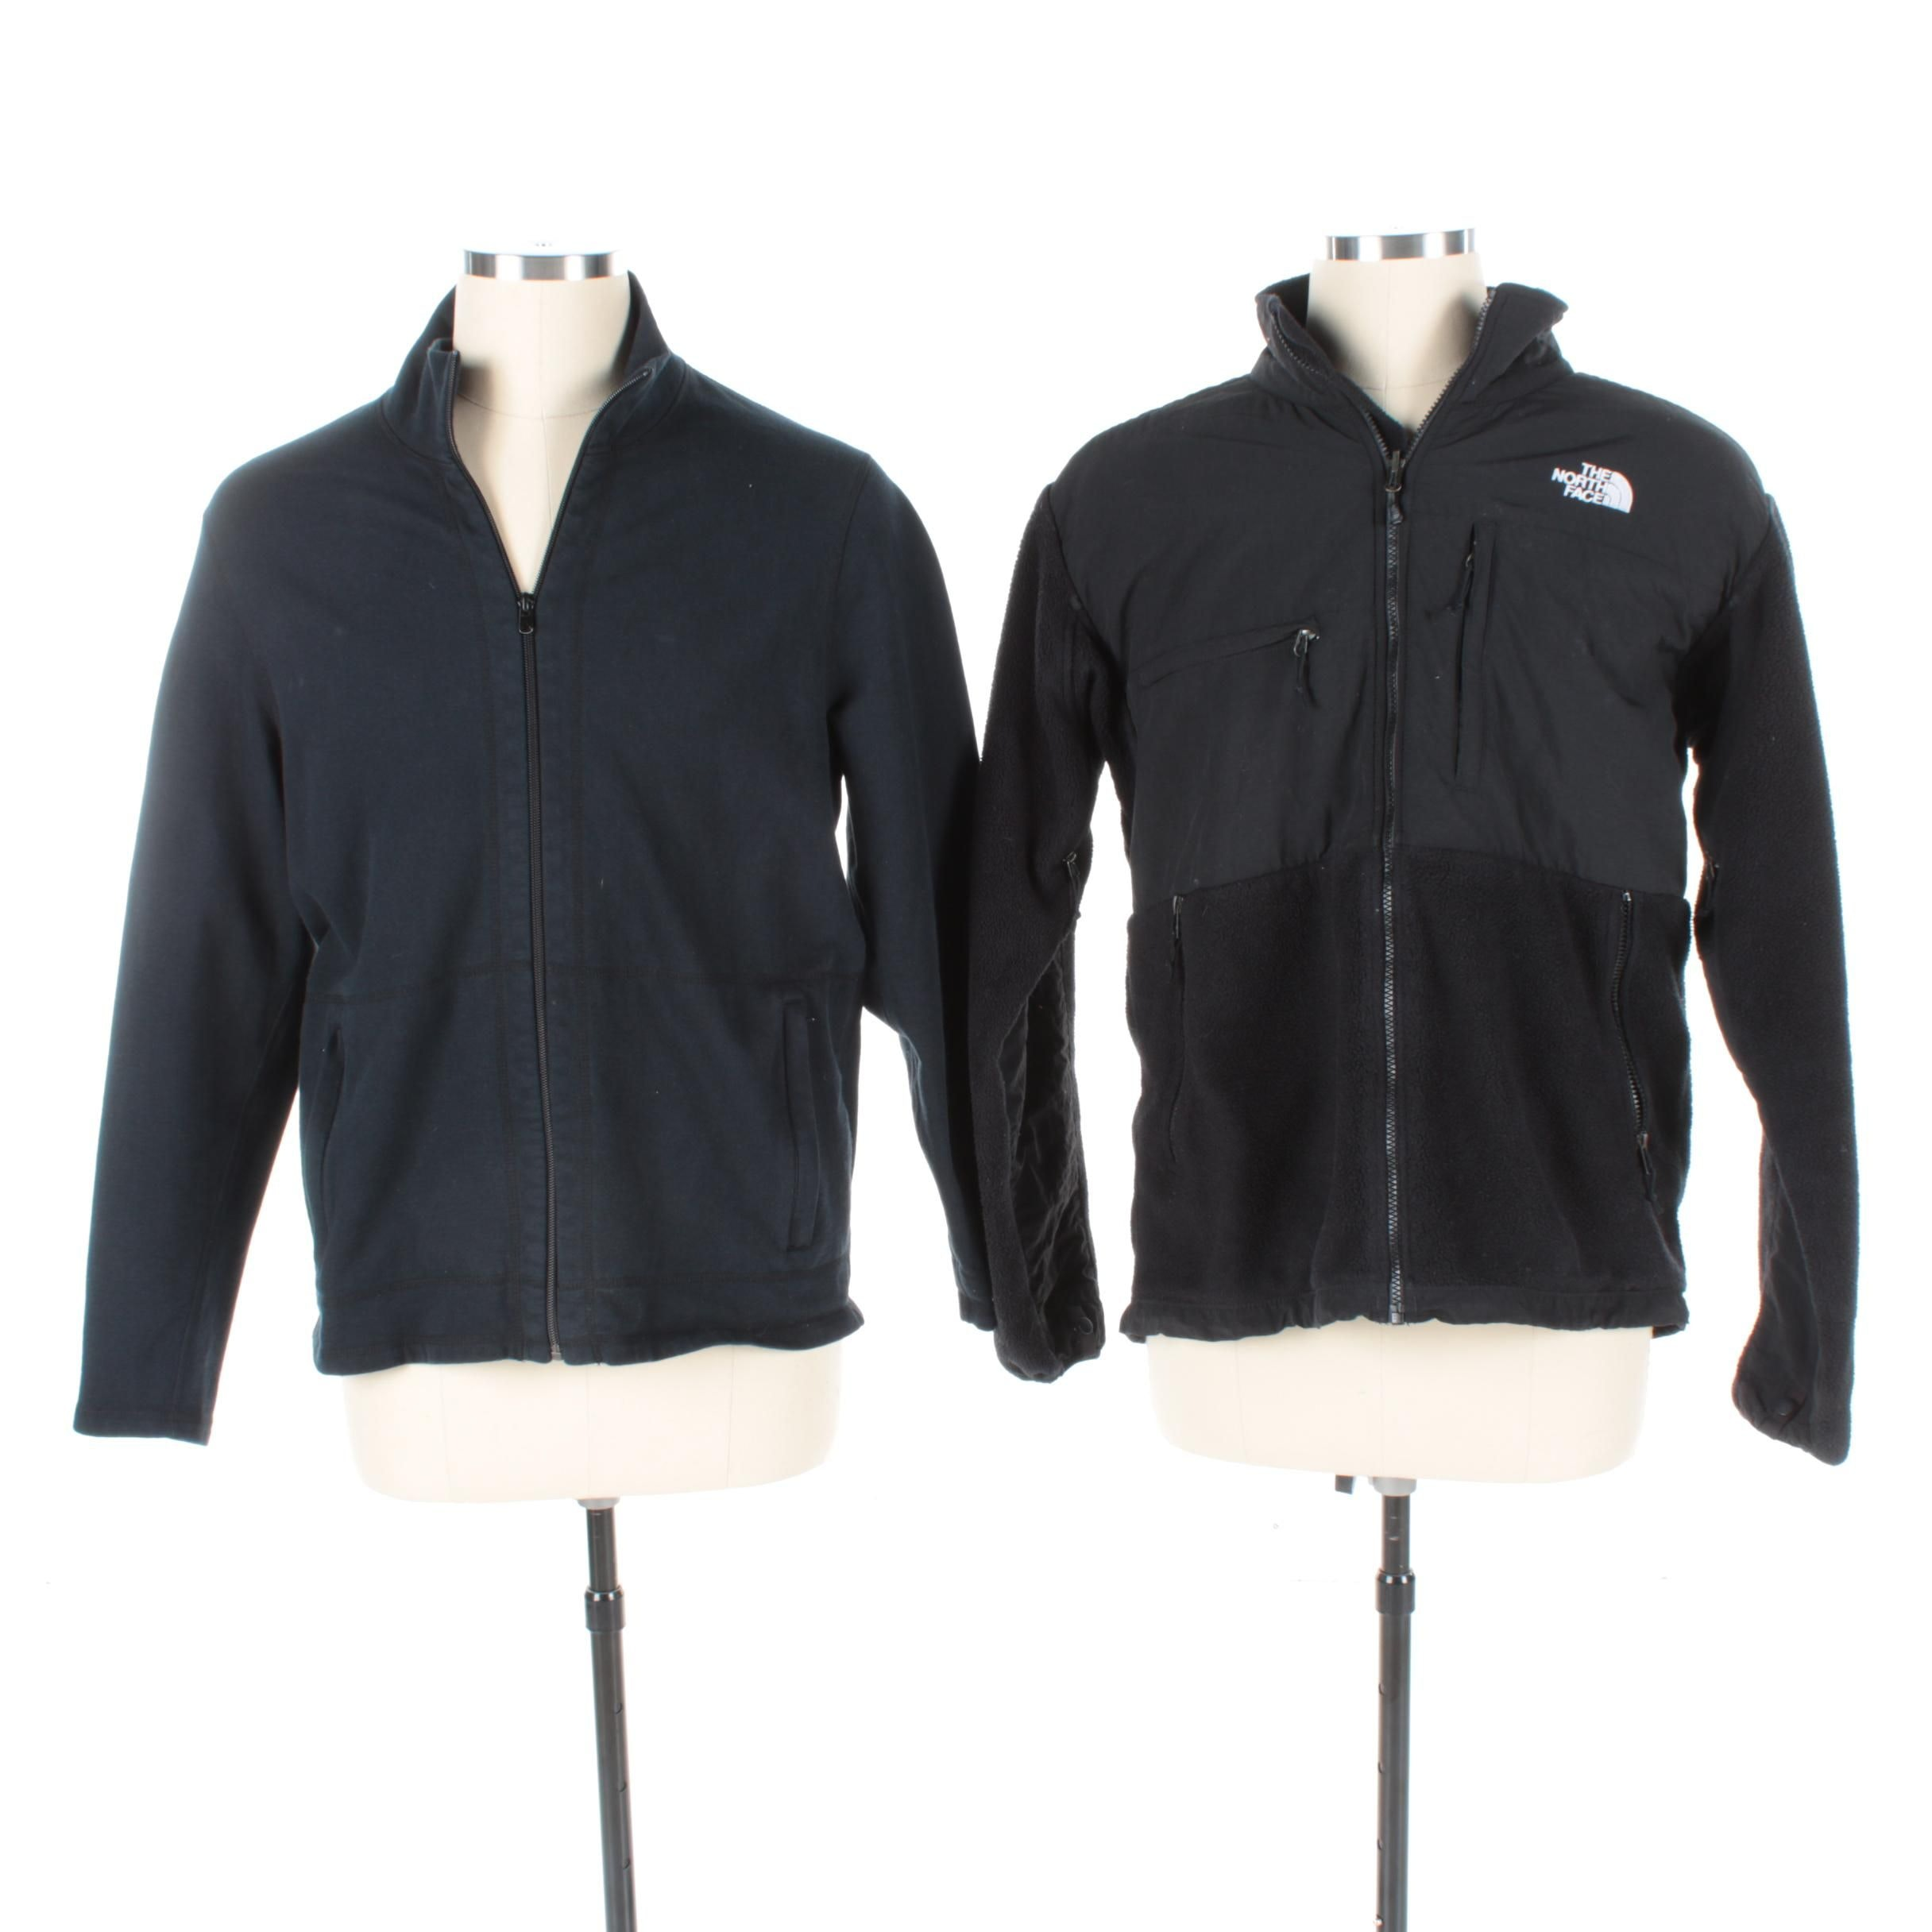 Men's The North Face and DKNY Zip Up Jackets